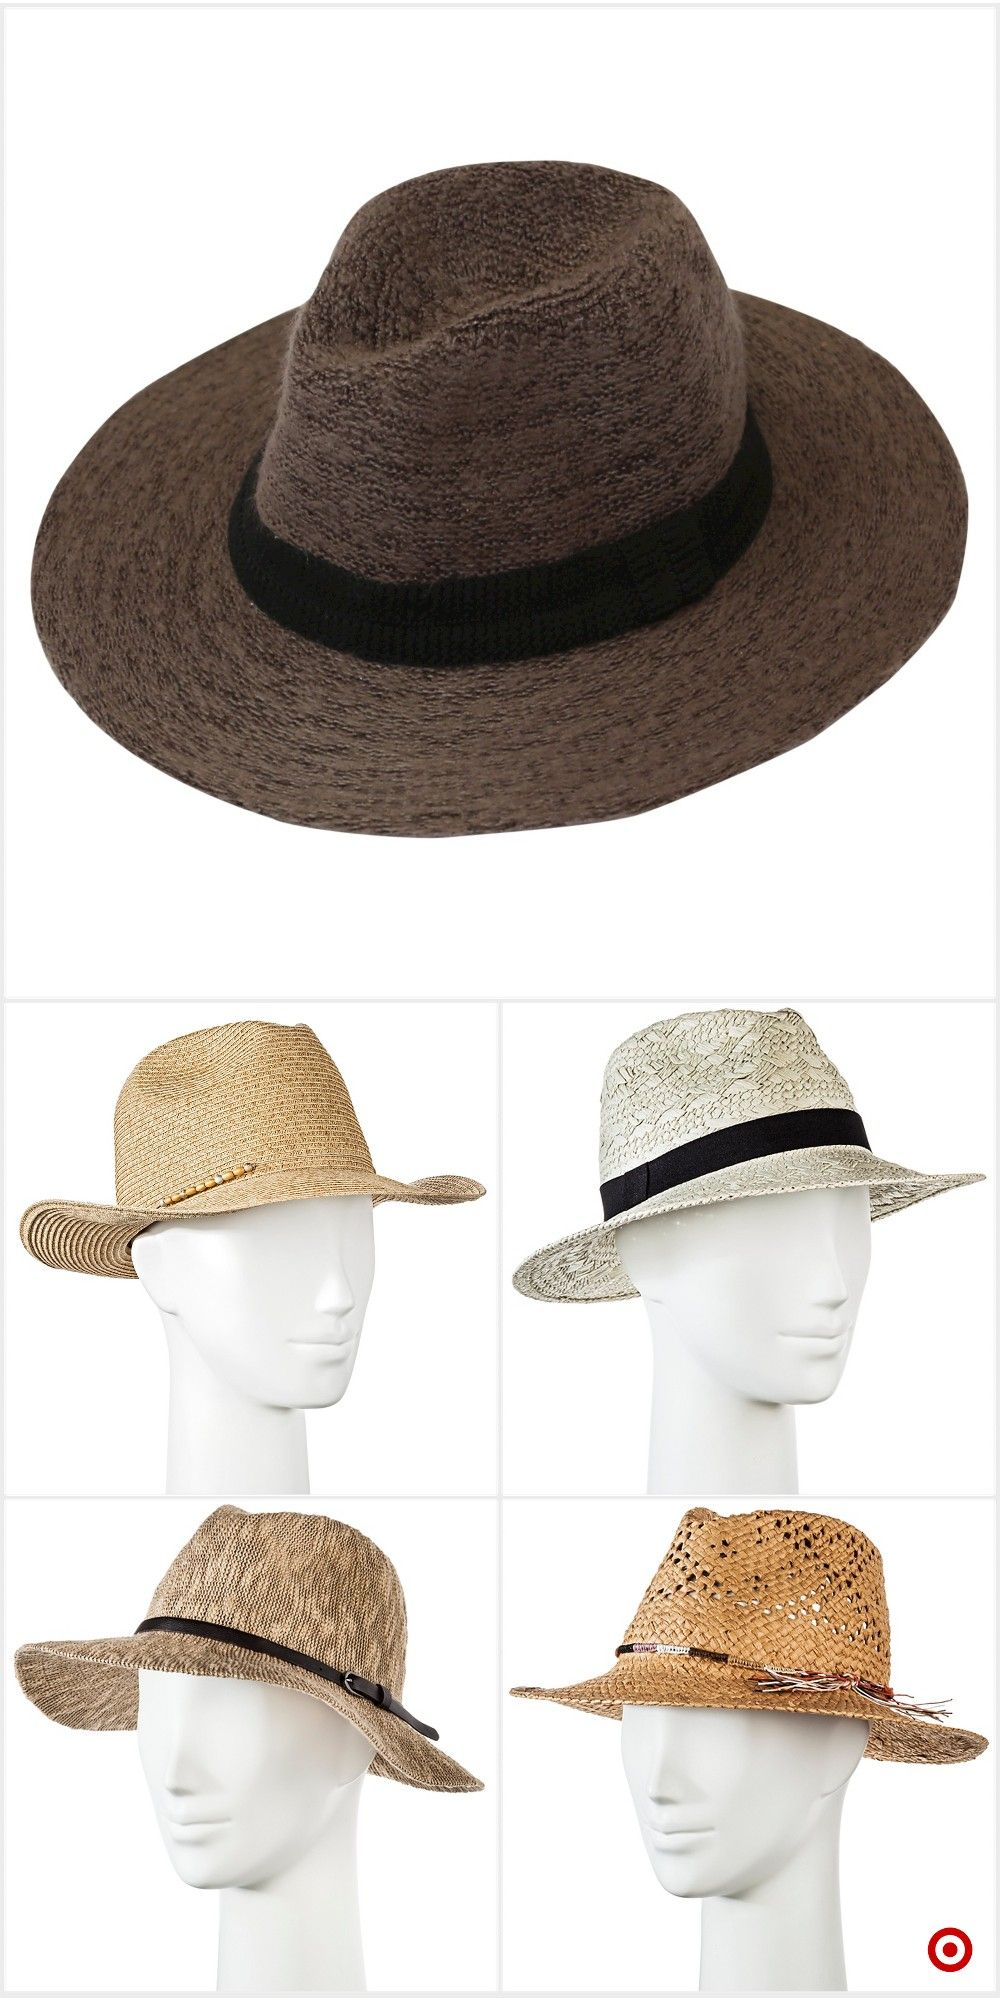 34f866b52a0 Shop Target for panama hats you will love at great low prices. Free  shipping on orders of  35+ or free same-day pick-up in store.